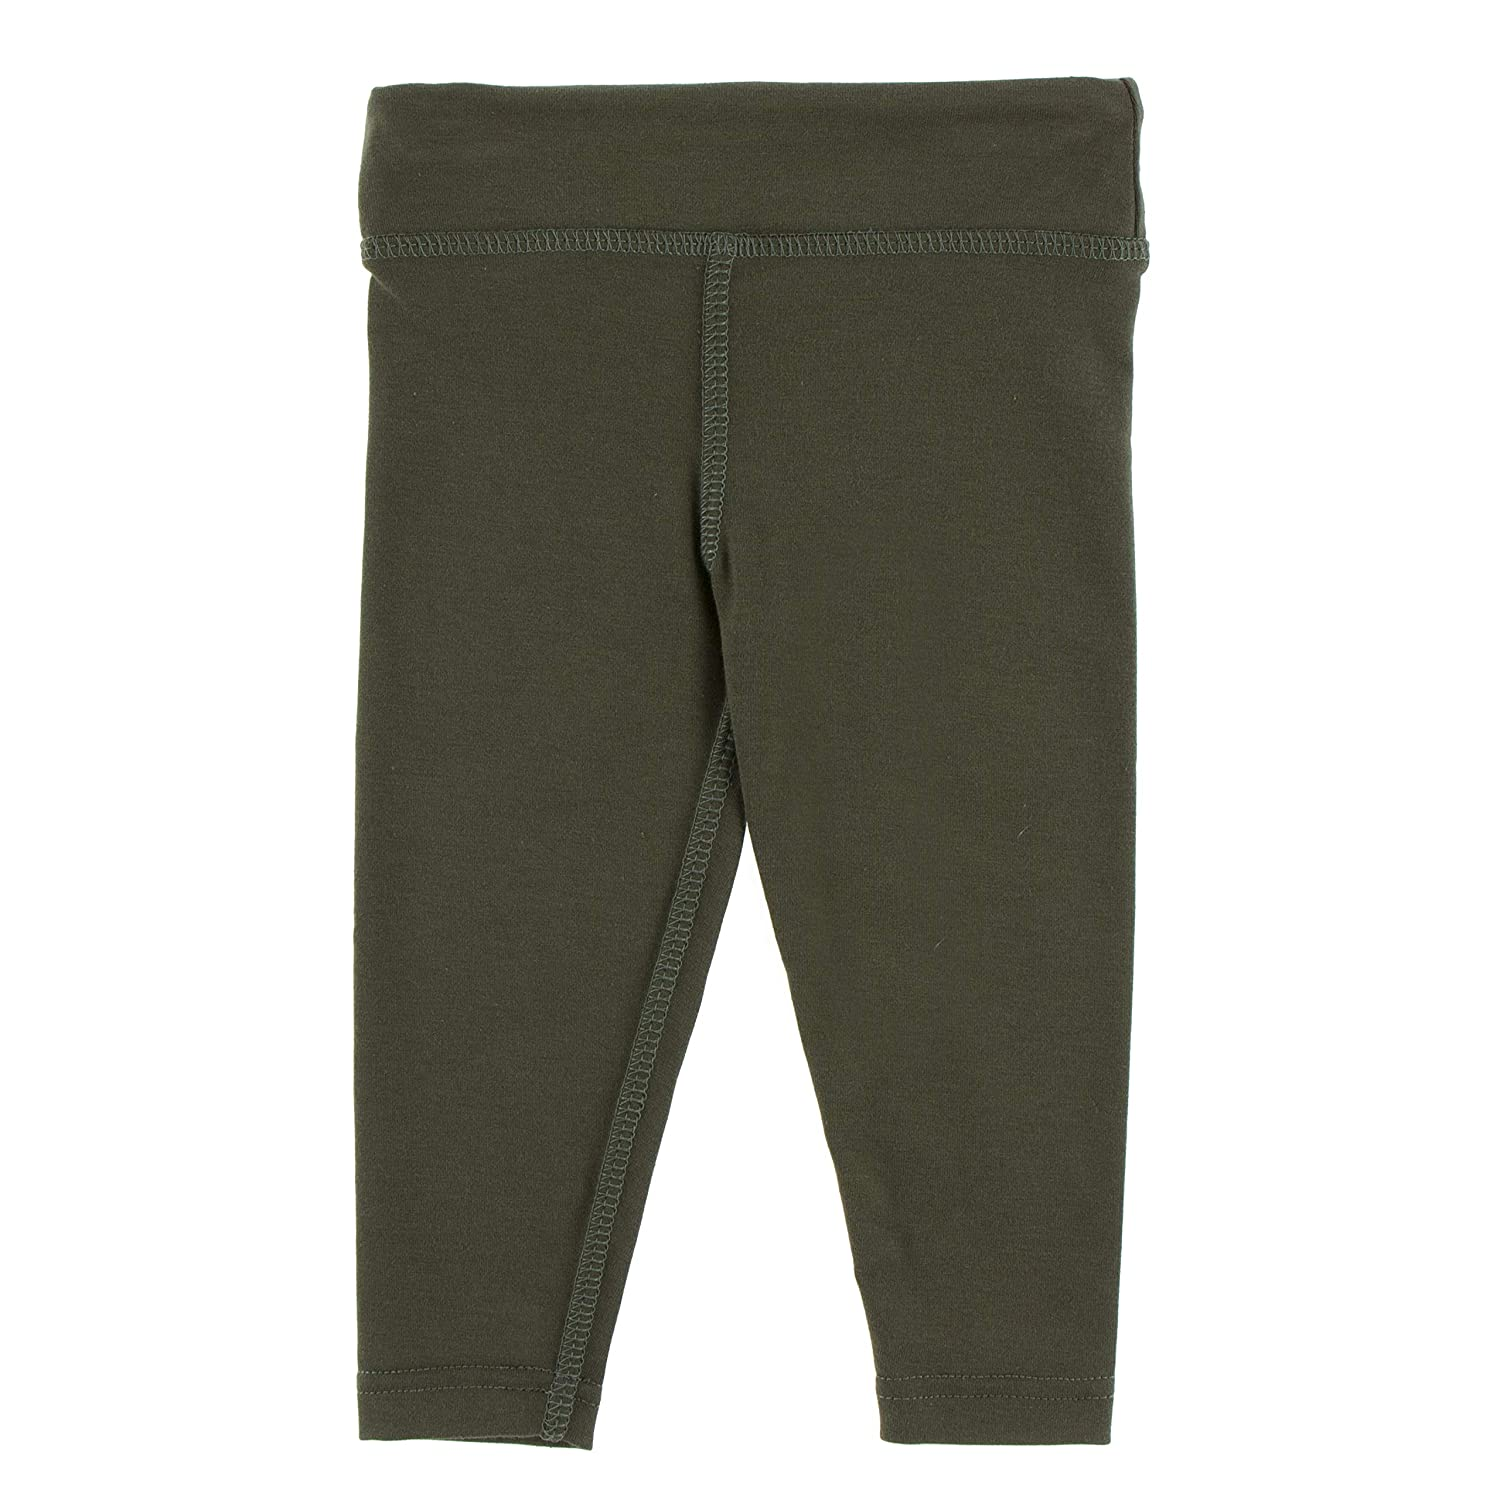 4T Kickee Pants Solid Performance Jersey Legging in Succulent